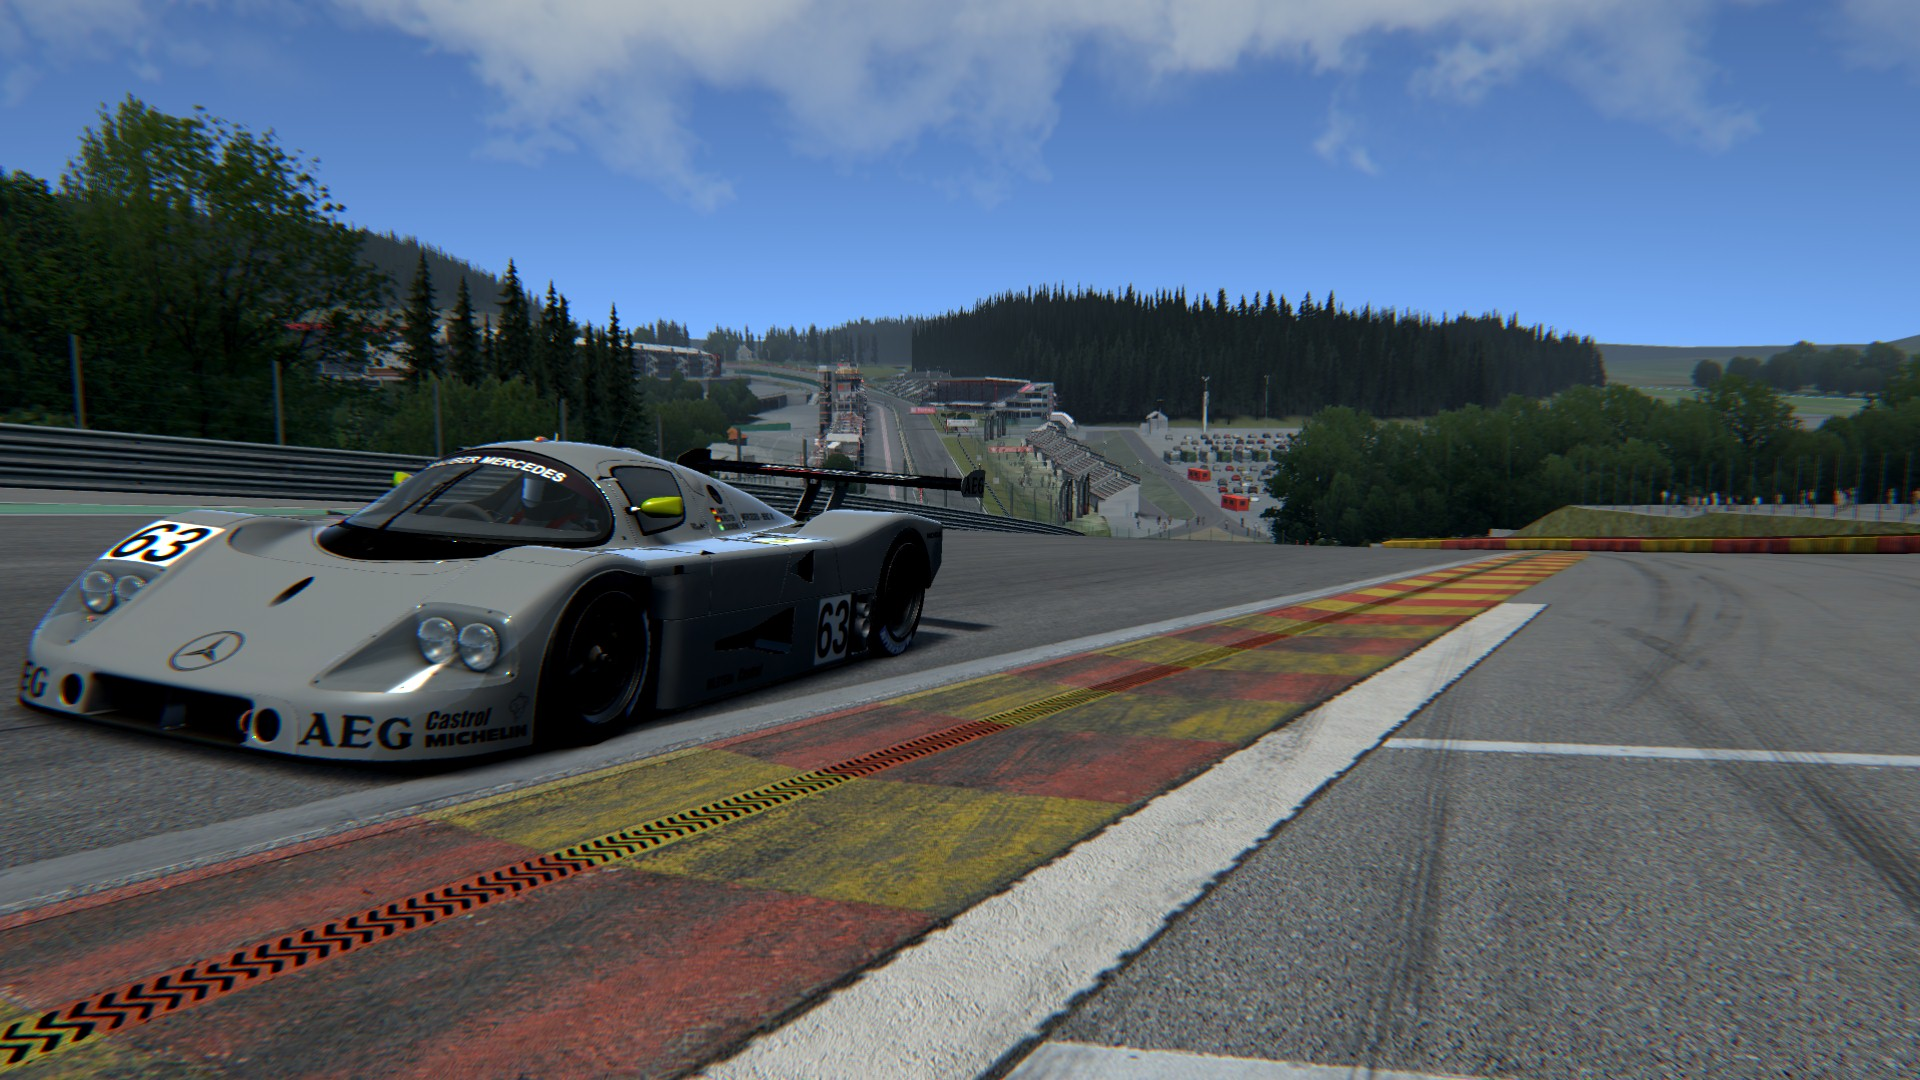 Screenshot_ks_mercedes_c9_spa_14-5-115-10-34-43.jpg